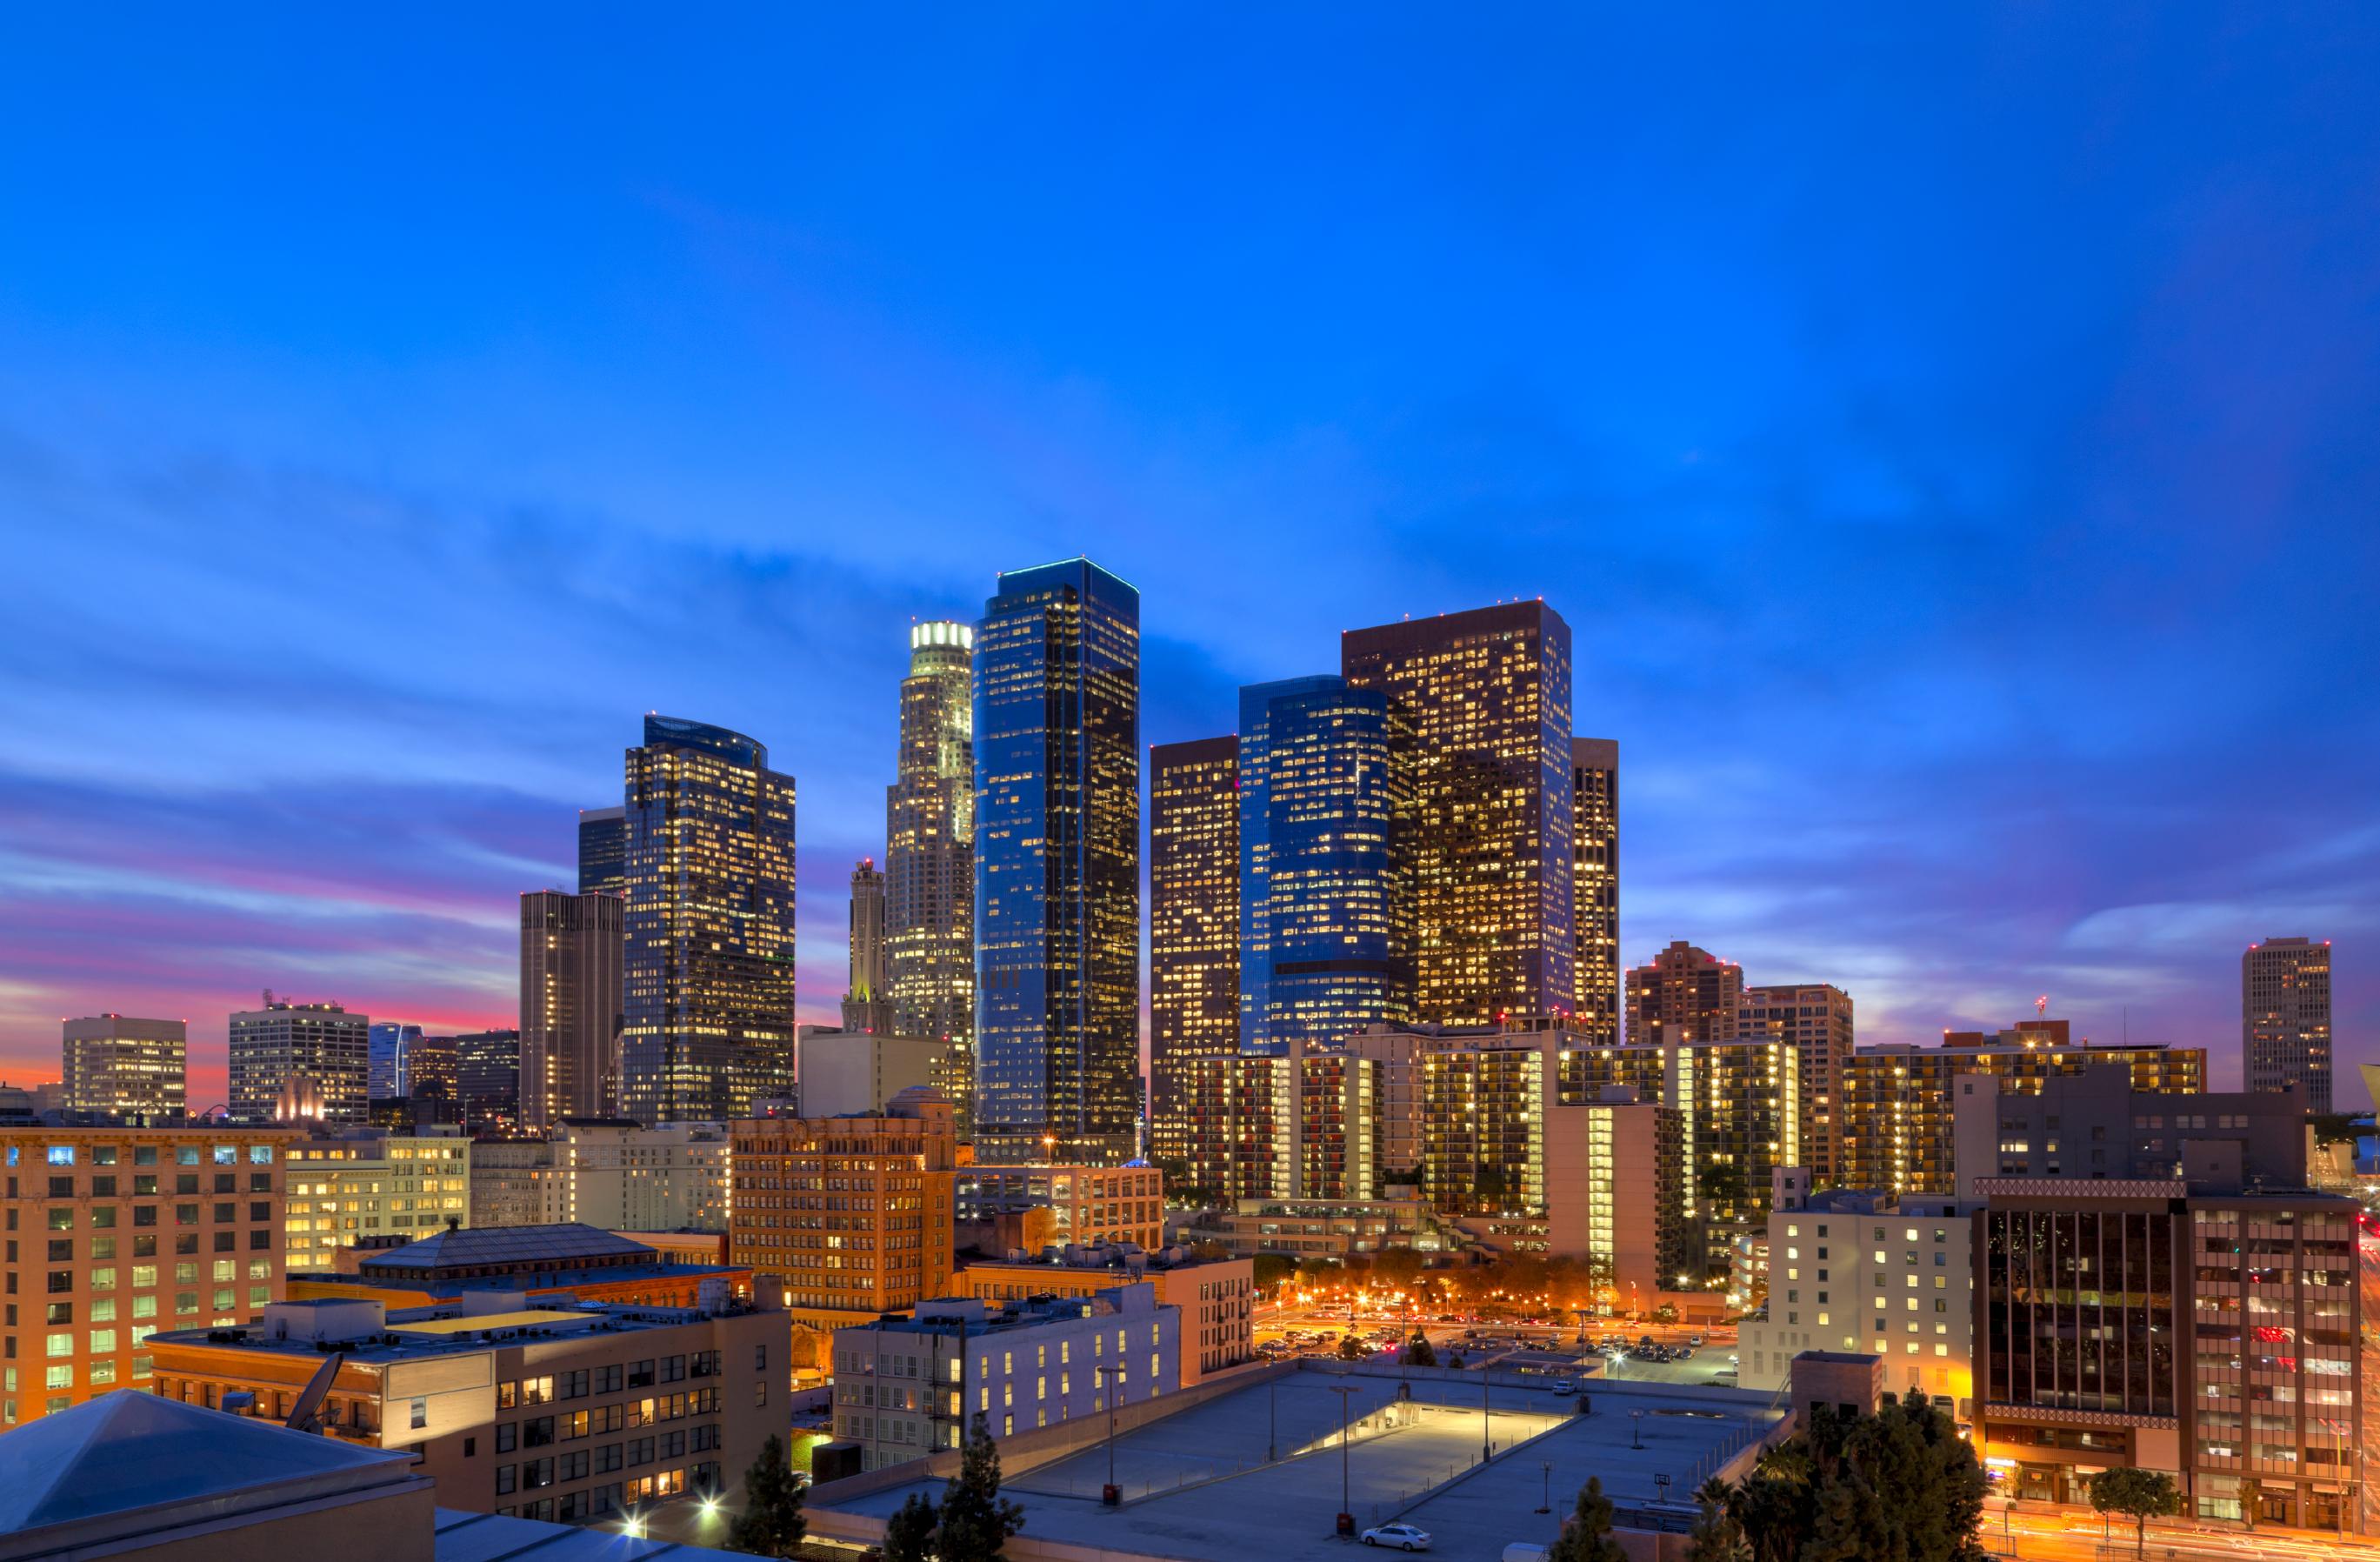 Los_Angeles_Skyline_at_Dusk_from_Rooftop